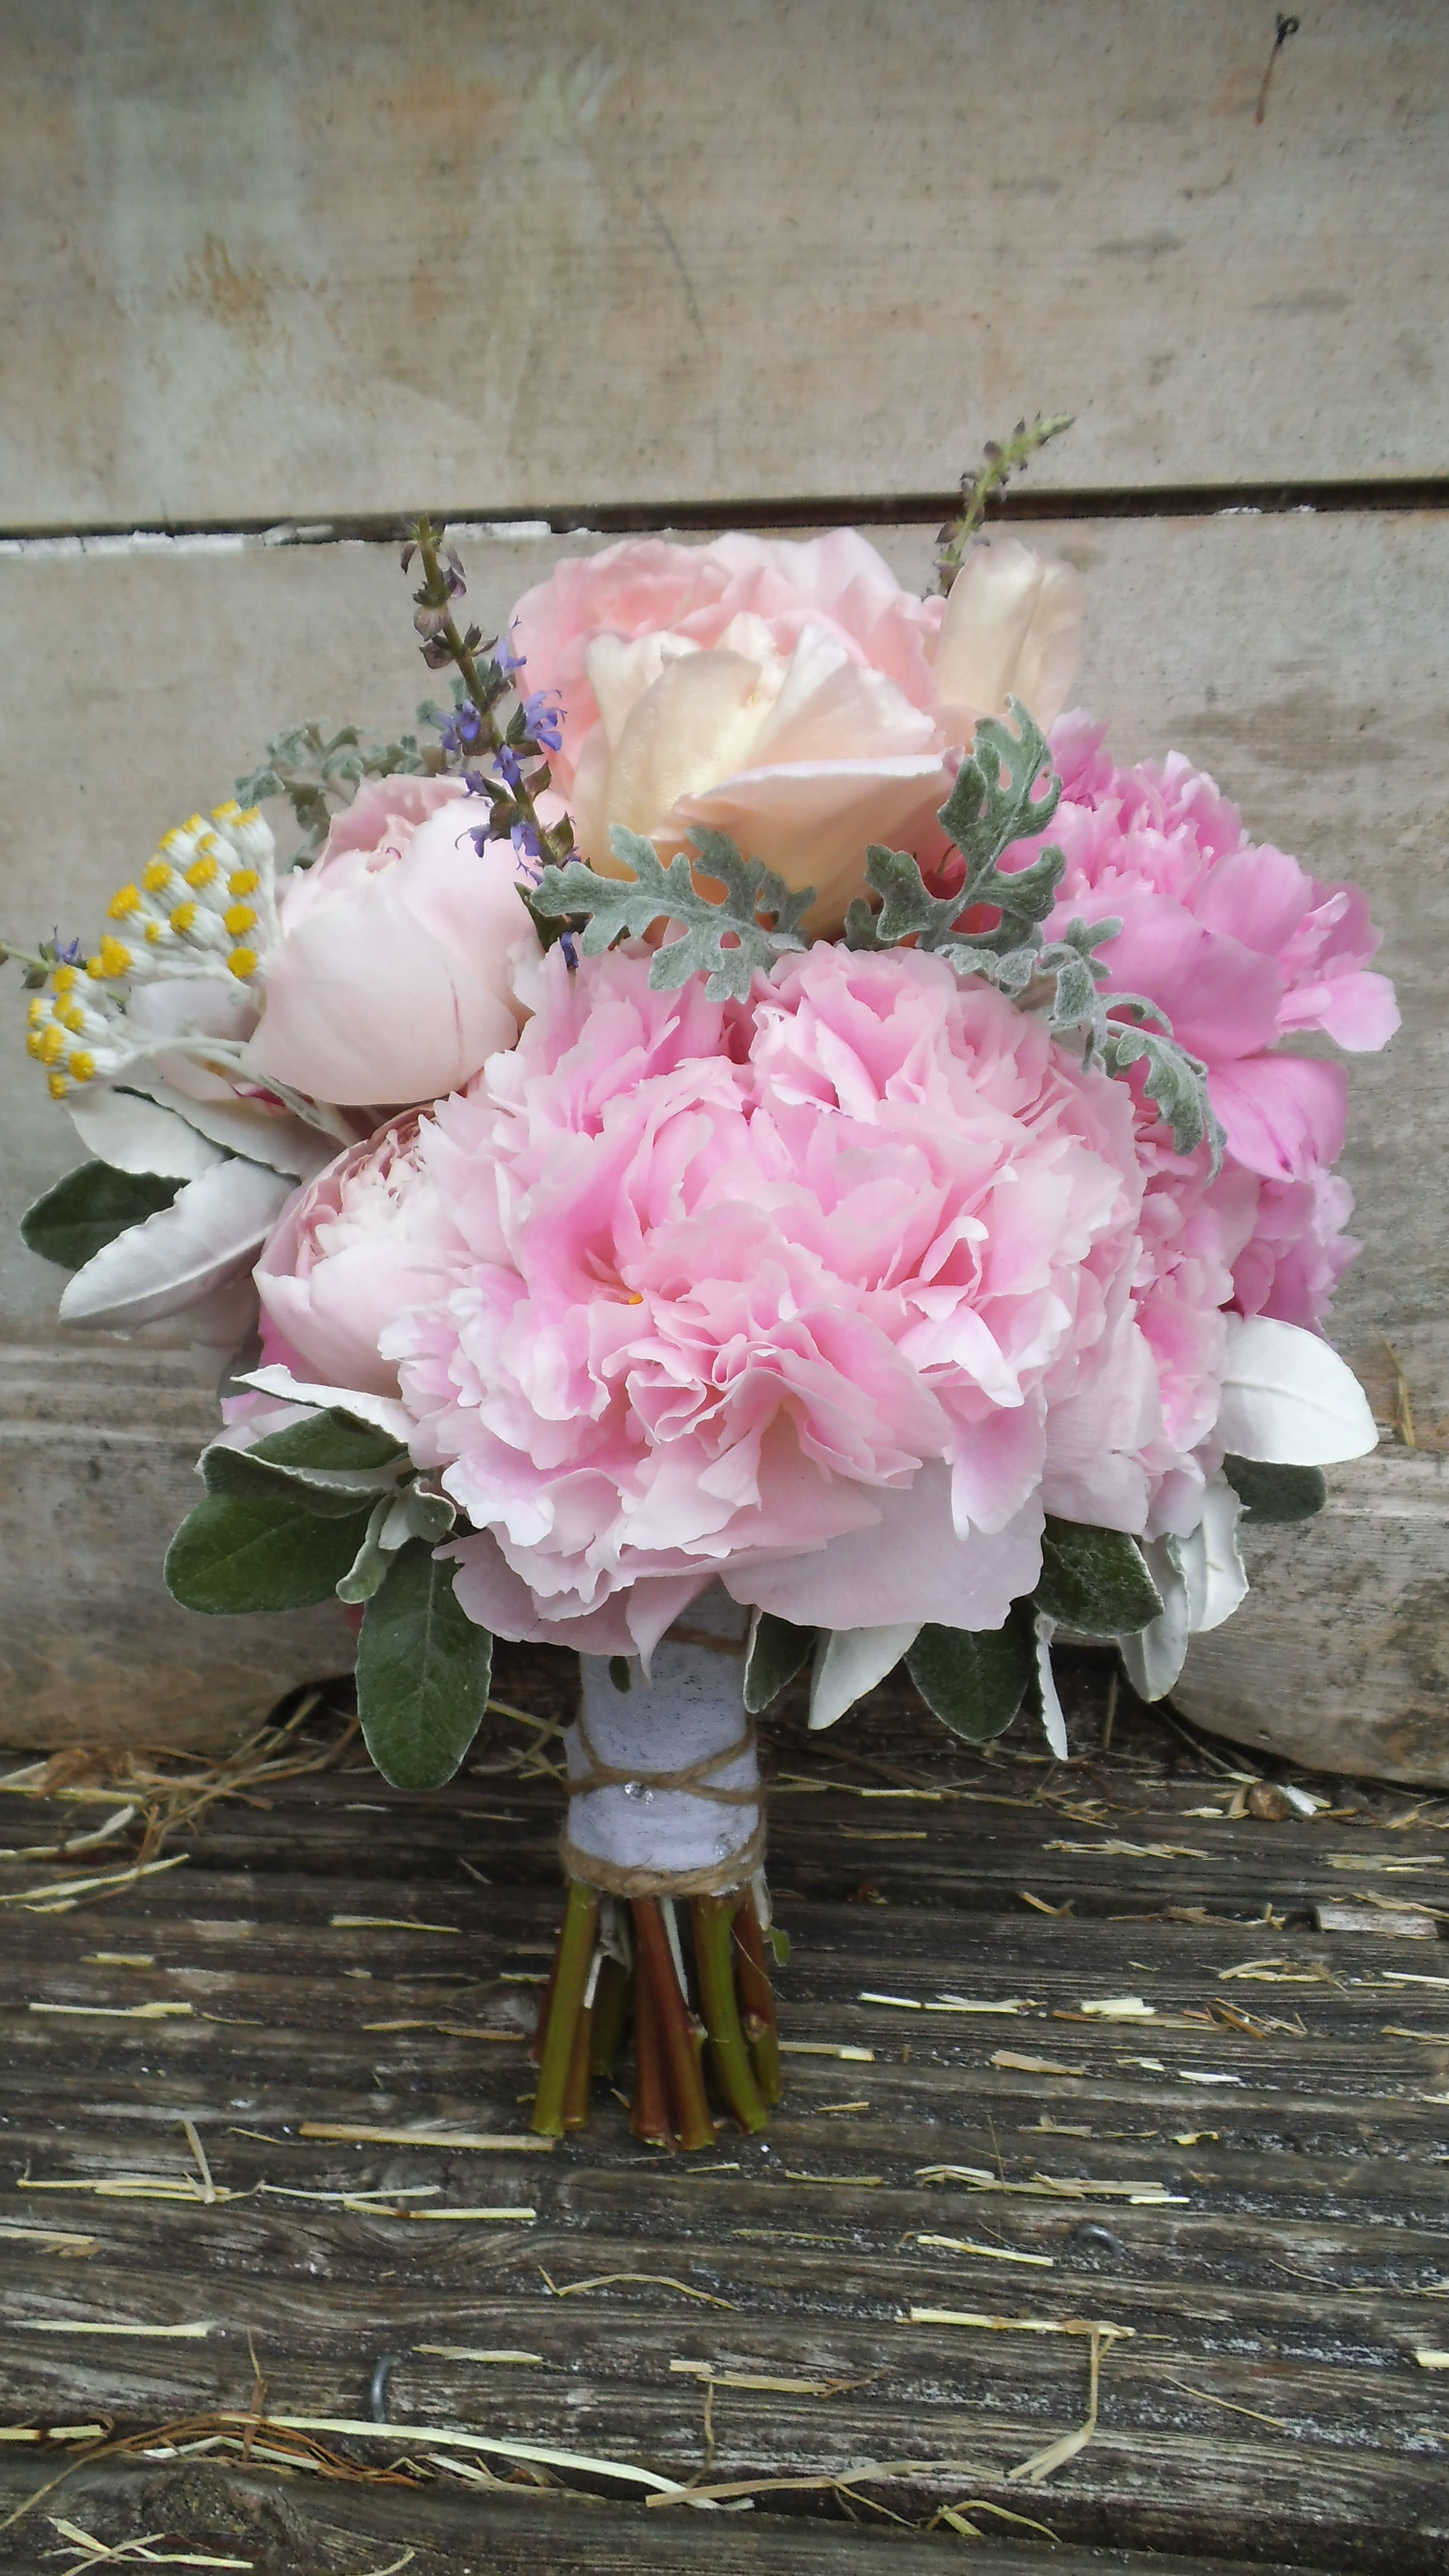 rose and peony bouquet | stuff I like | Pinterest | Peonies bouquet ...